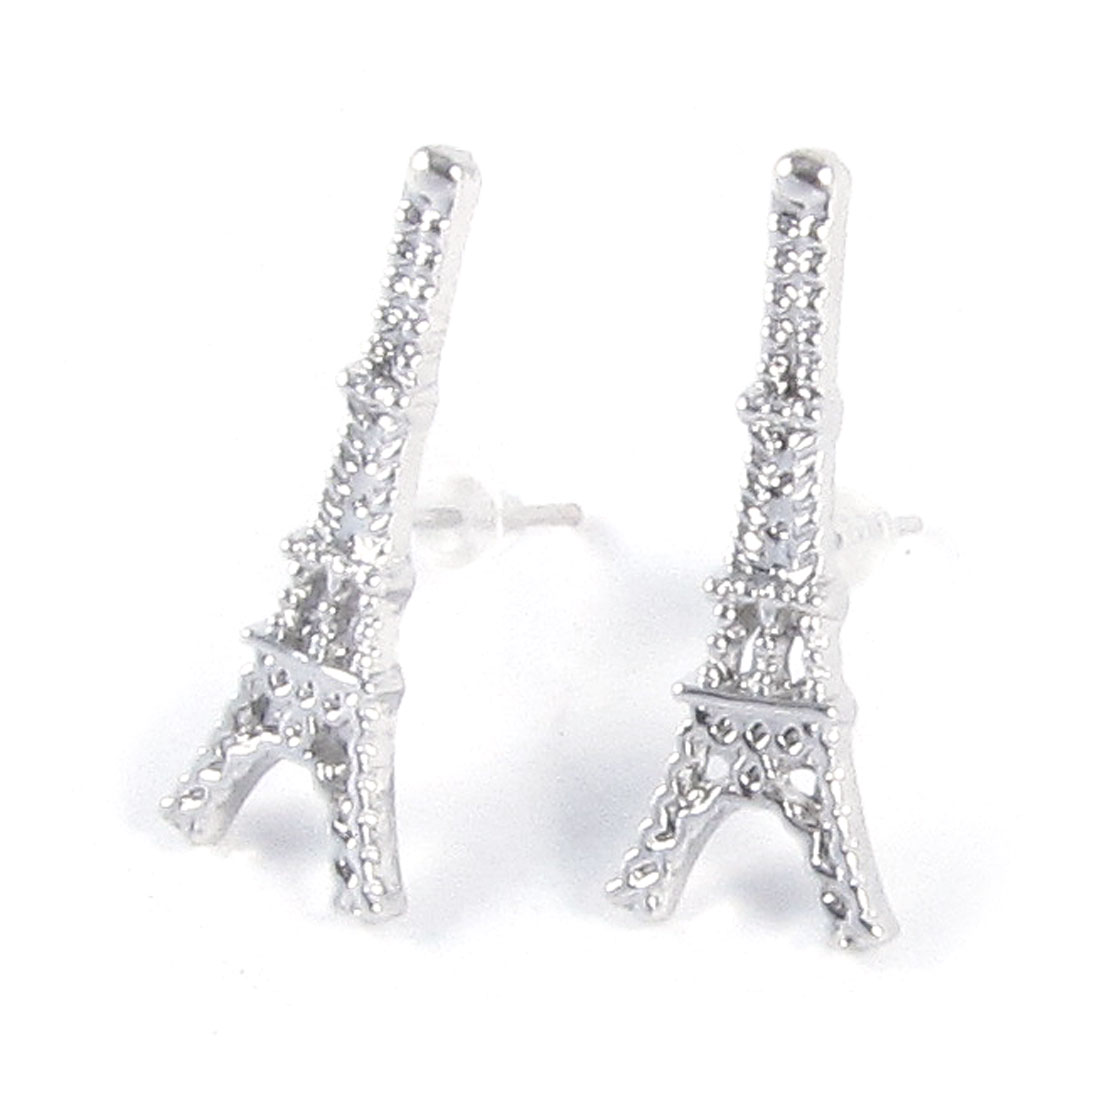 Lady Ear Decor Silver Tone Tower Shape Detailing Stud Earrings Pair